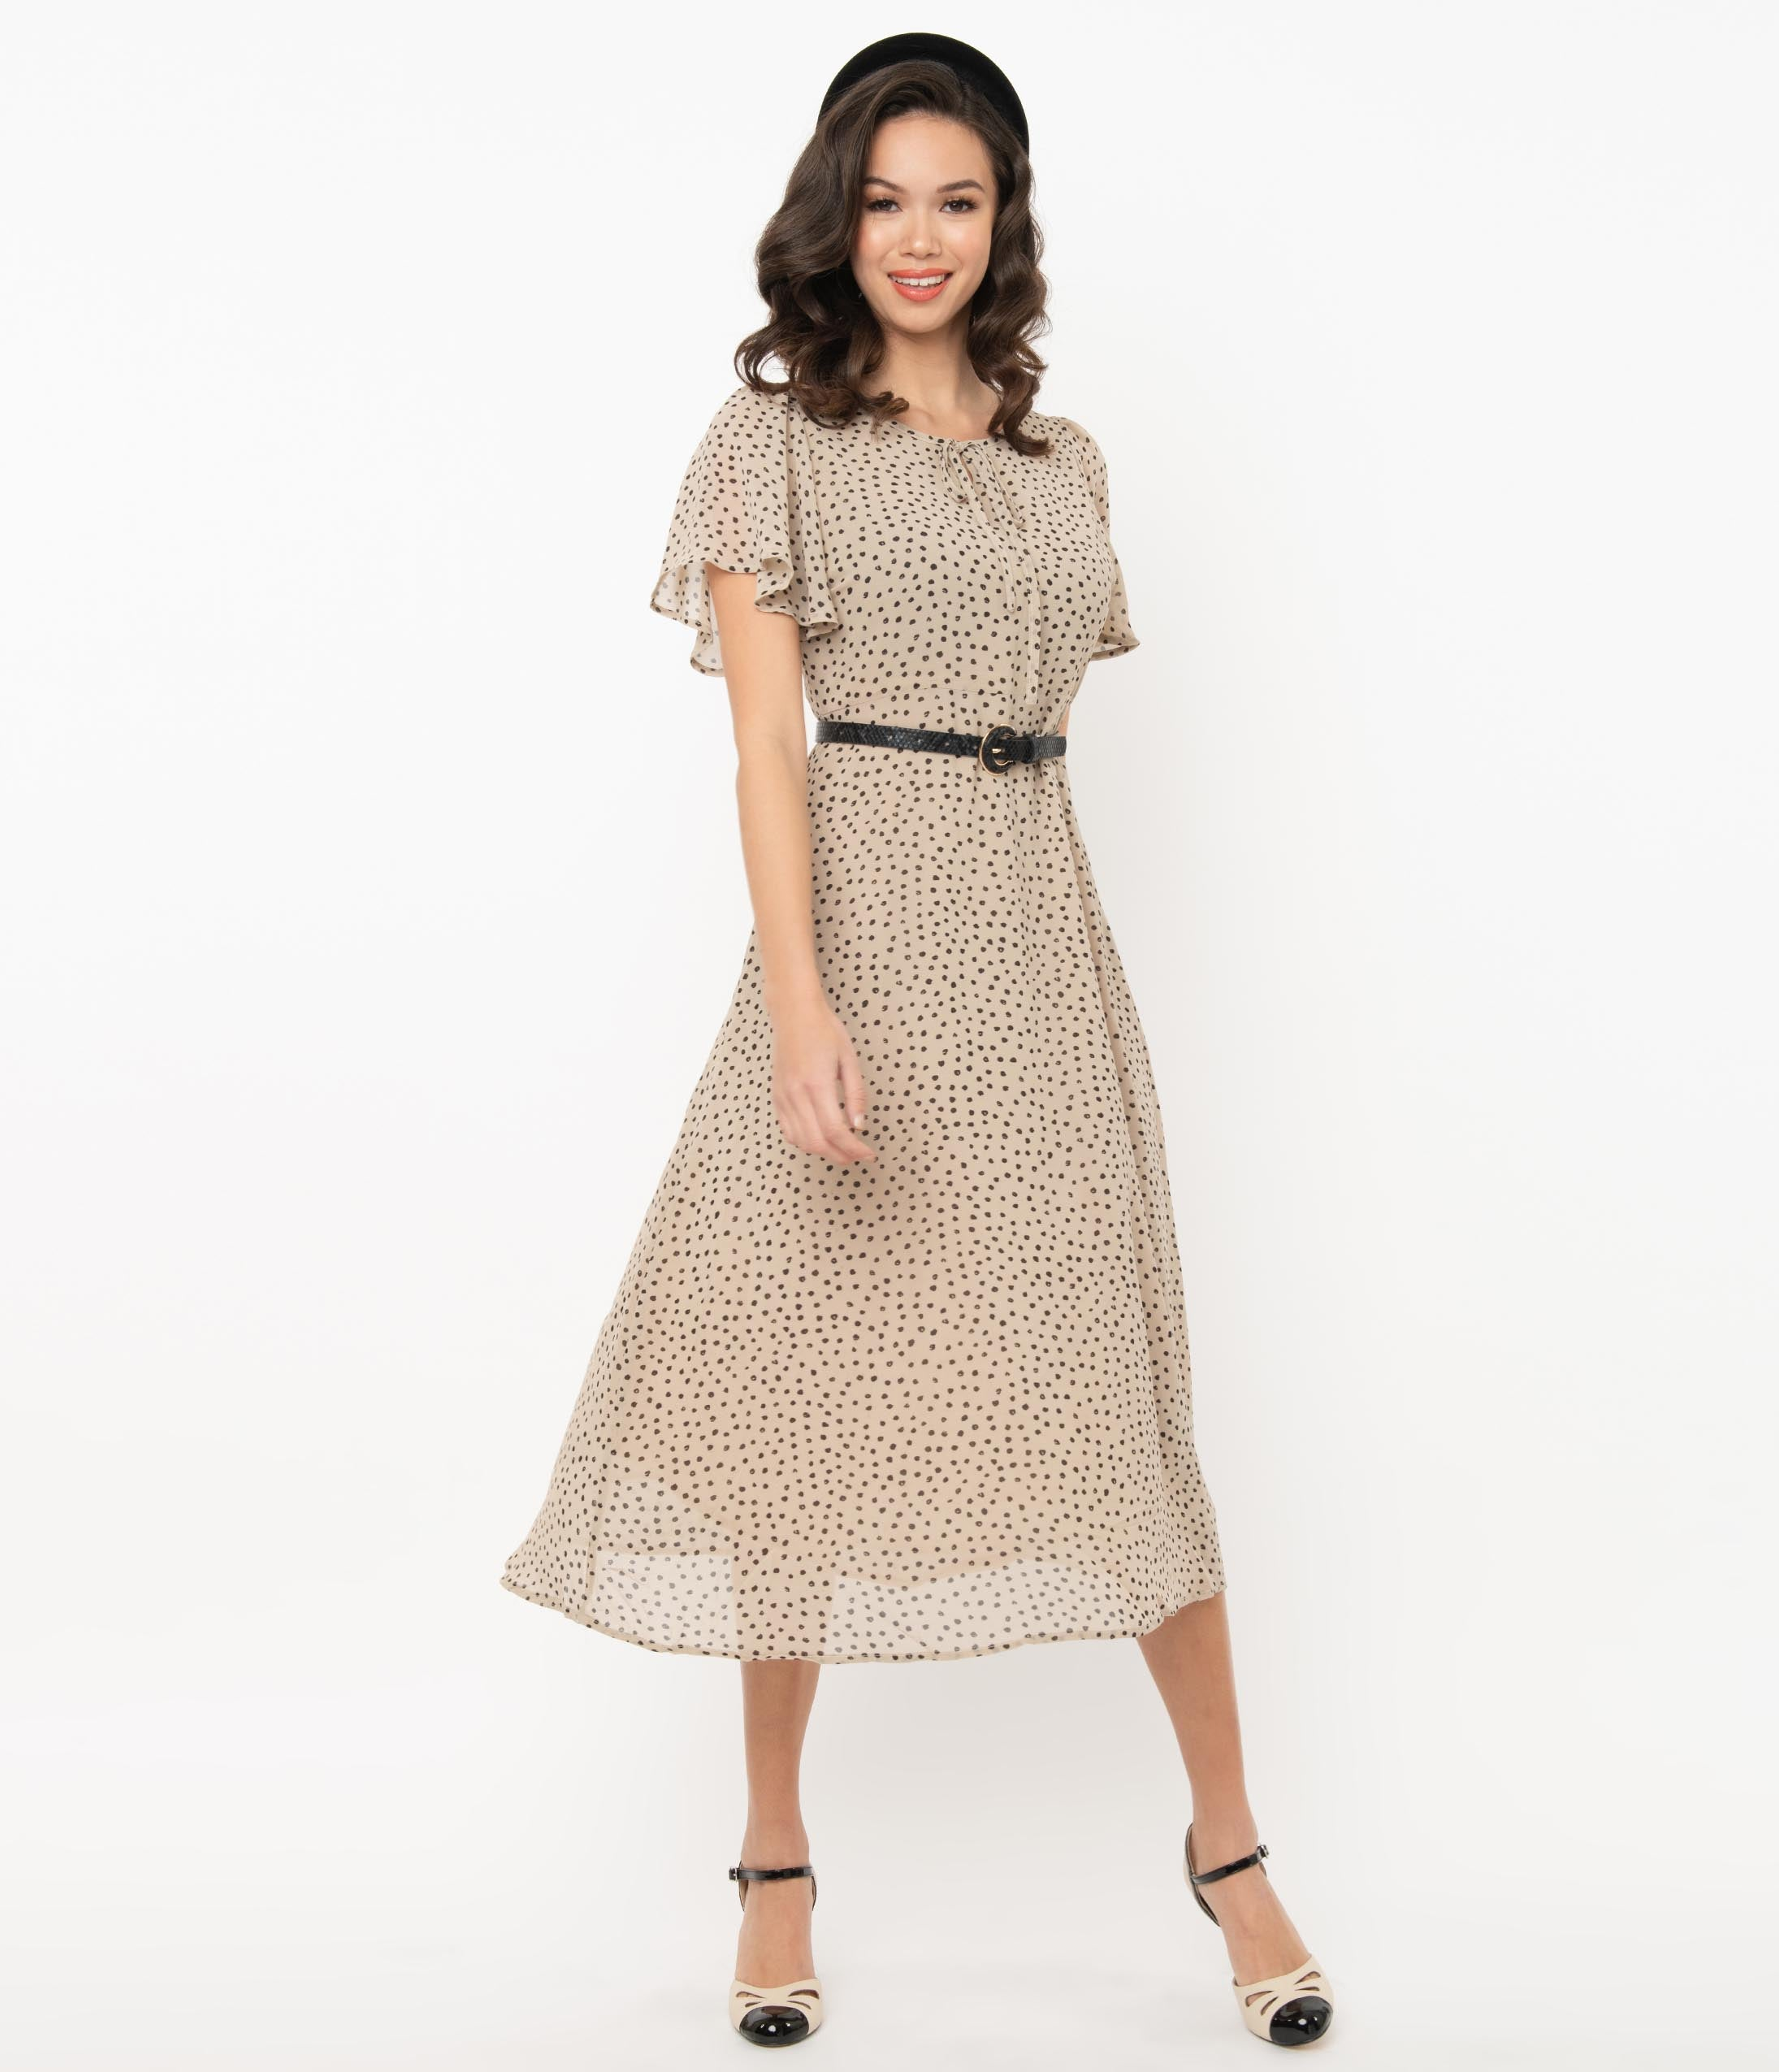 1930s Style Clothing and Fashion Vintage Style Beige  Black Dotted Midi Dress $62.00 AT vintagedancer.com